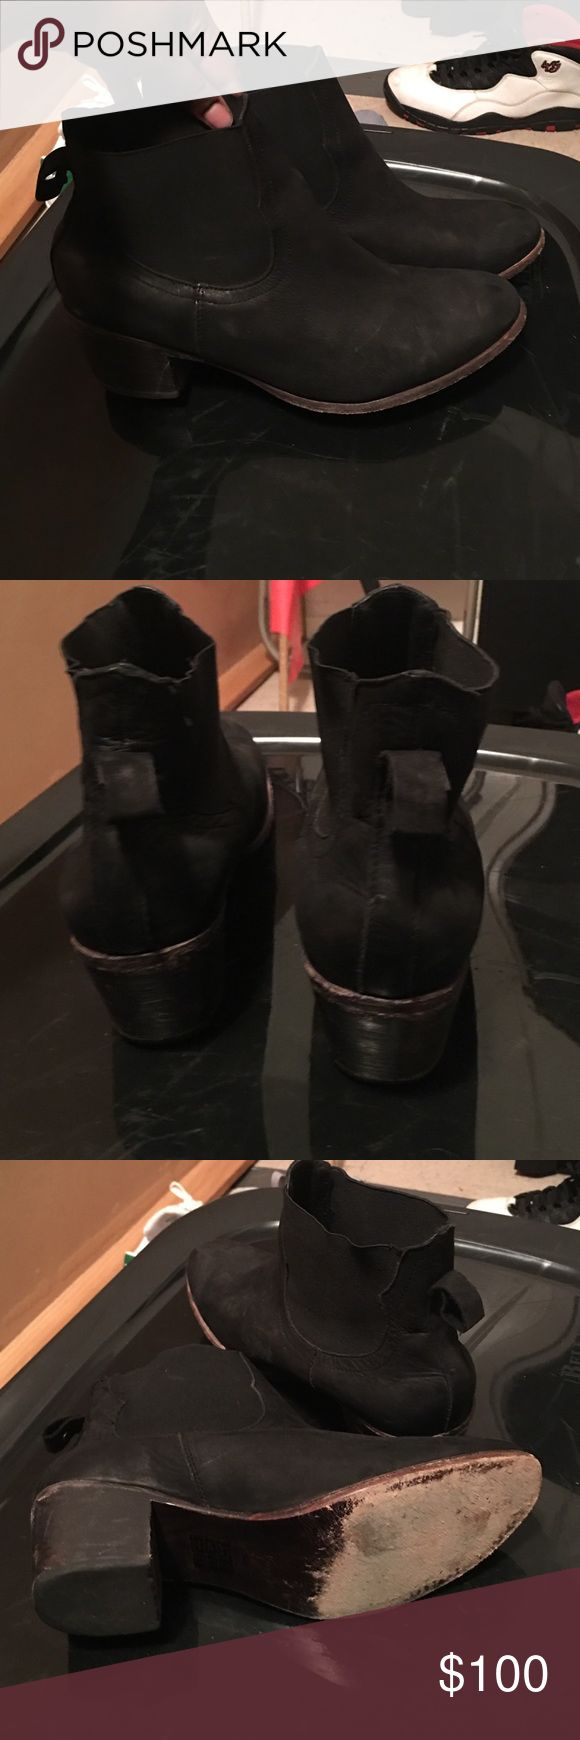 Ankle booties all black size 12 women's‼️ Stylish Ankle booties from Nordstrom Rack aprox heel 2inch or so Great condition. Size 12 women's. Located in Brooklyn for pickups‼️ Melrose & Market Shoes Ankle Boots & Booties